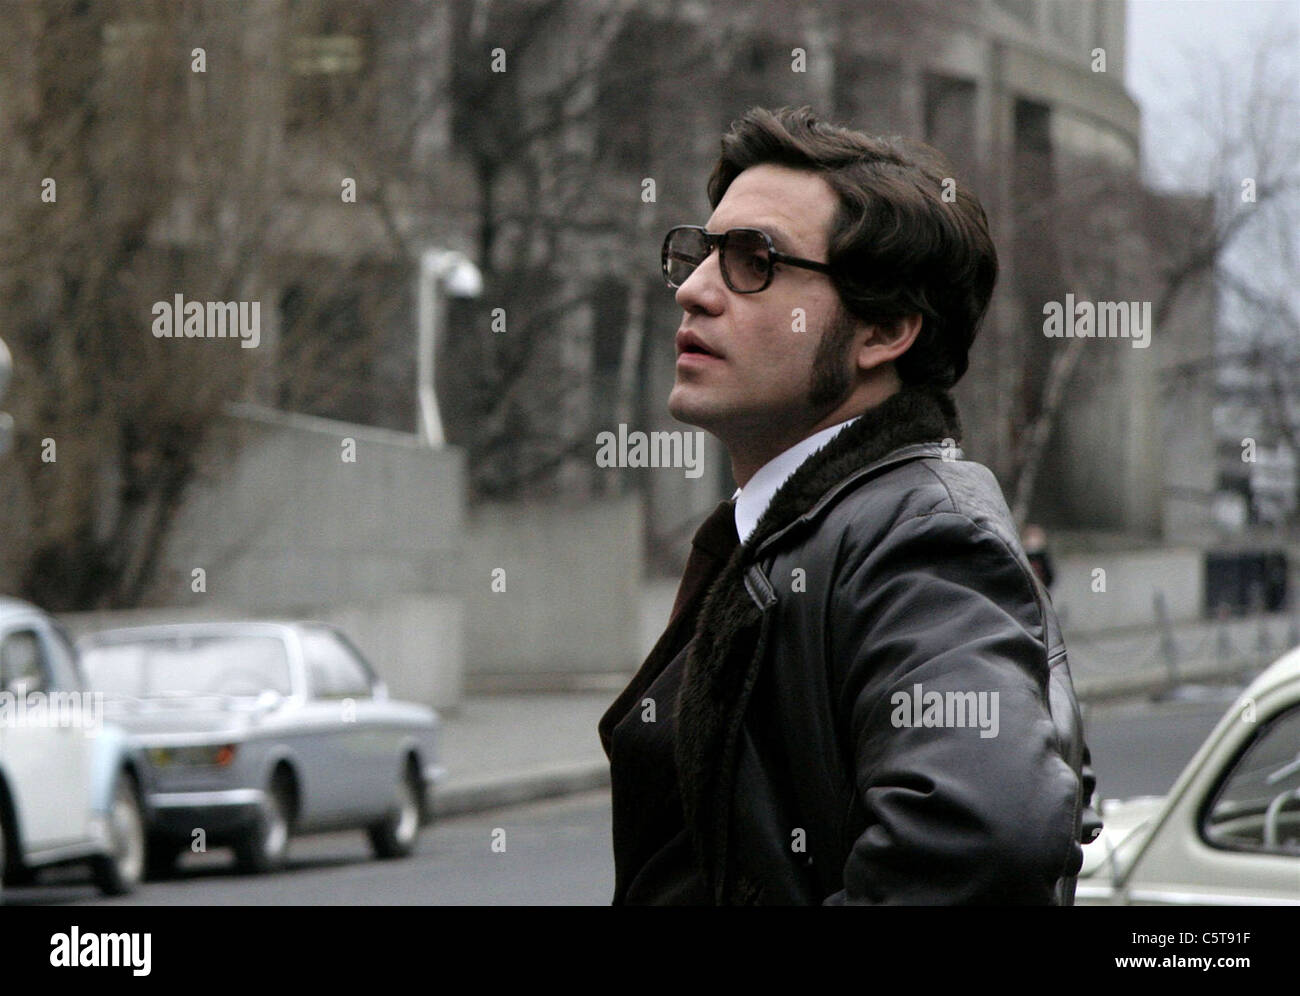 CARLOS THE JACKAL (TV) EDGAR RAMIREZ 004 MOVIESTORE COLLECTION LTD - Stock Image